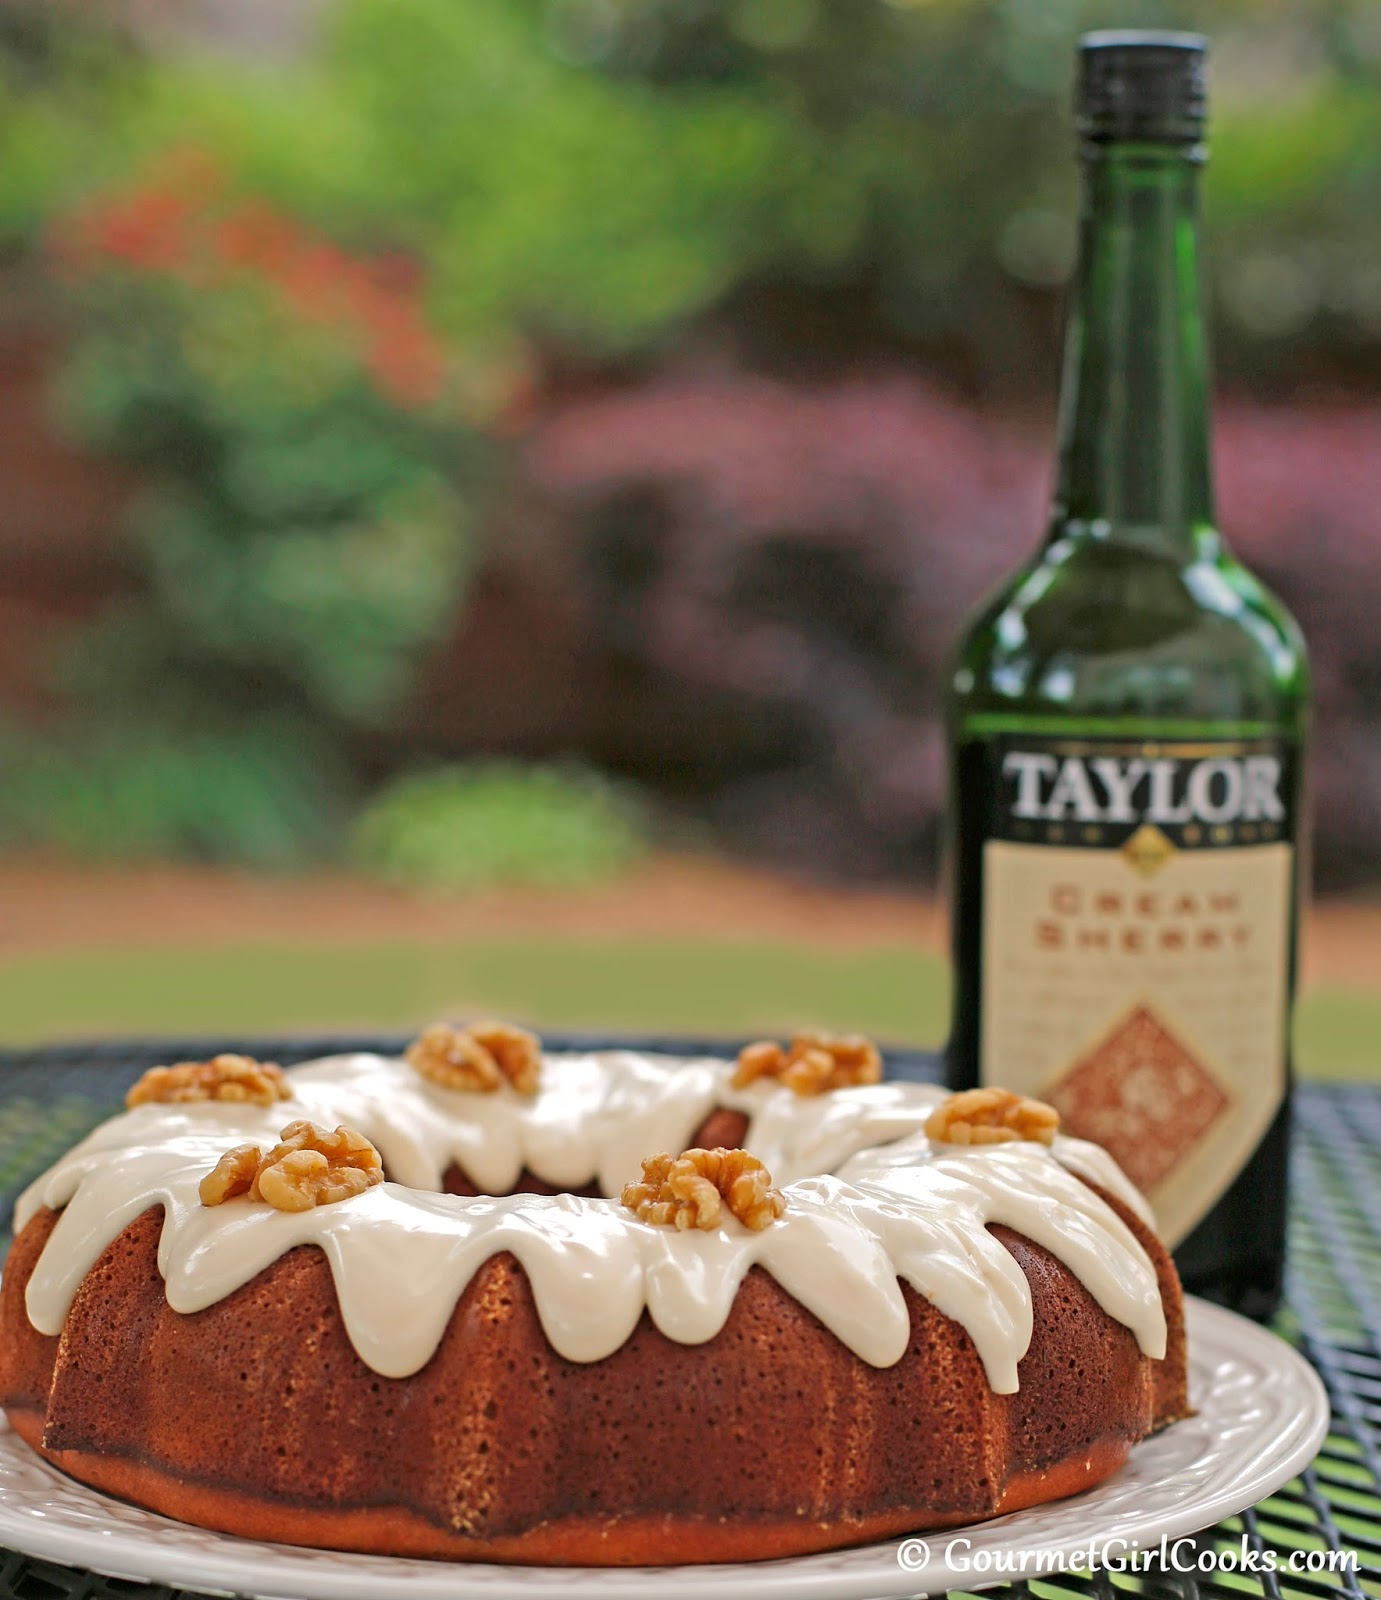 Gourmet Girl Cooks: Cream Sherry Bundt Cake - Low Carb ...